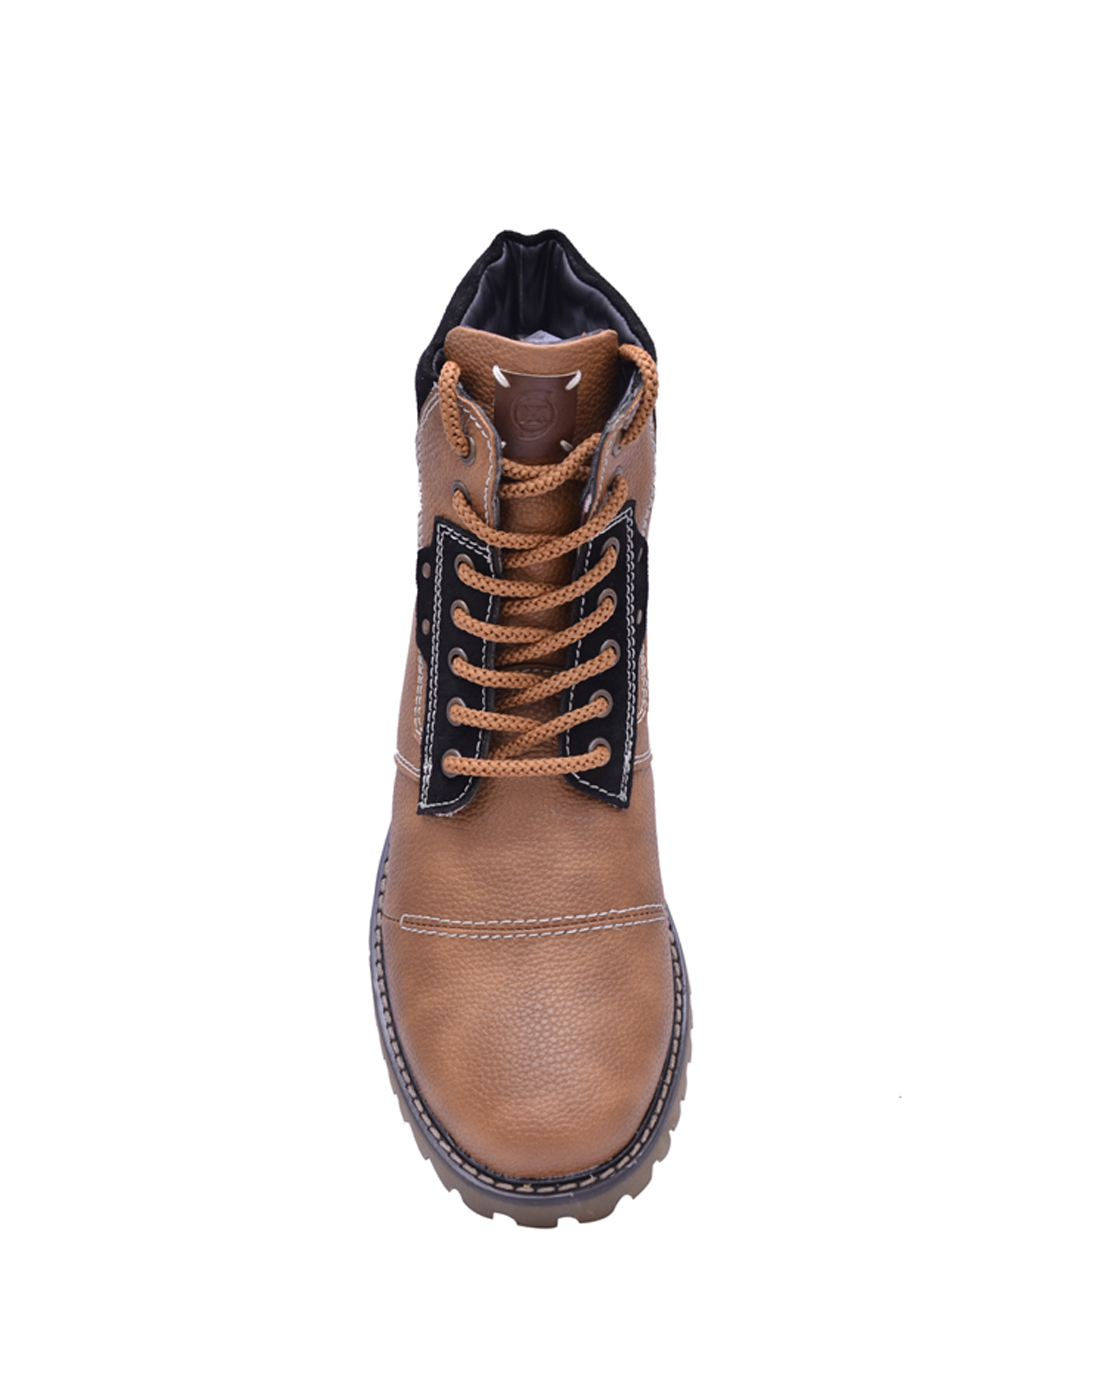 MEN'S CASUAL FASHION BOOT